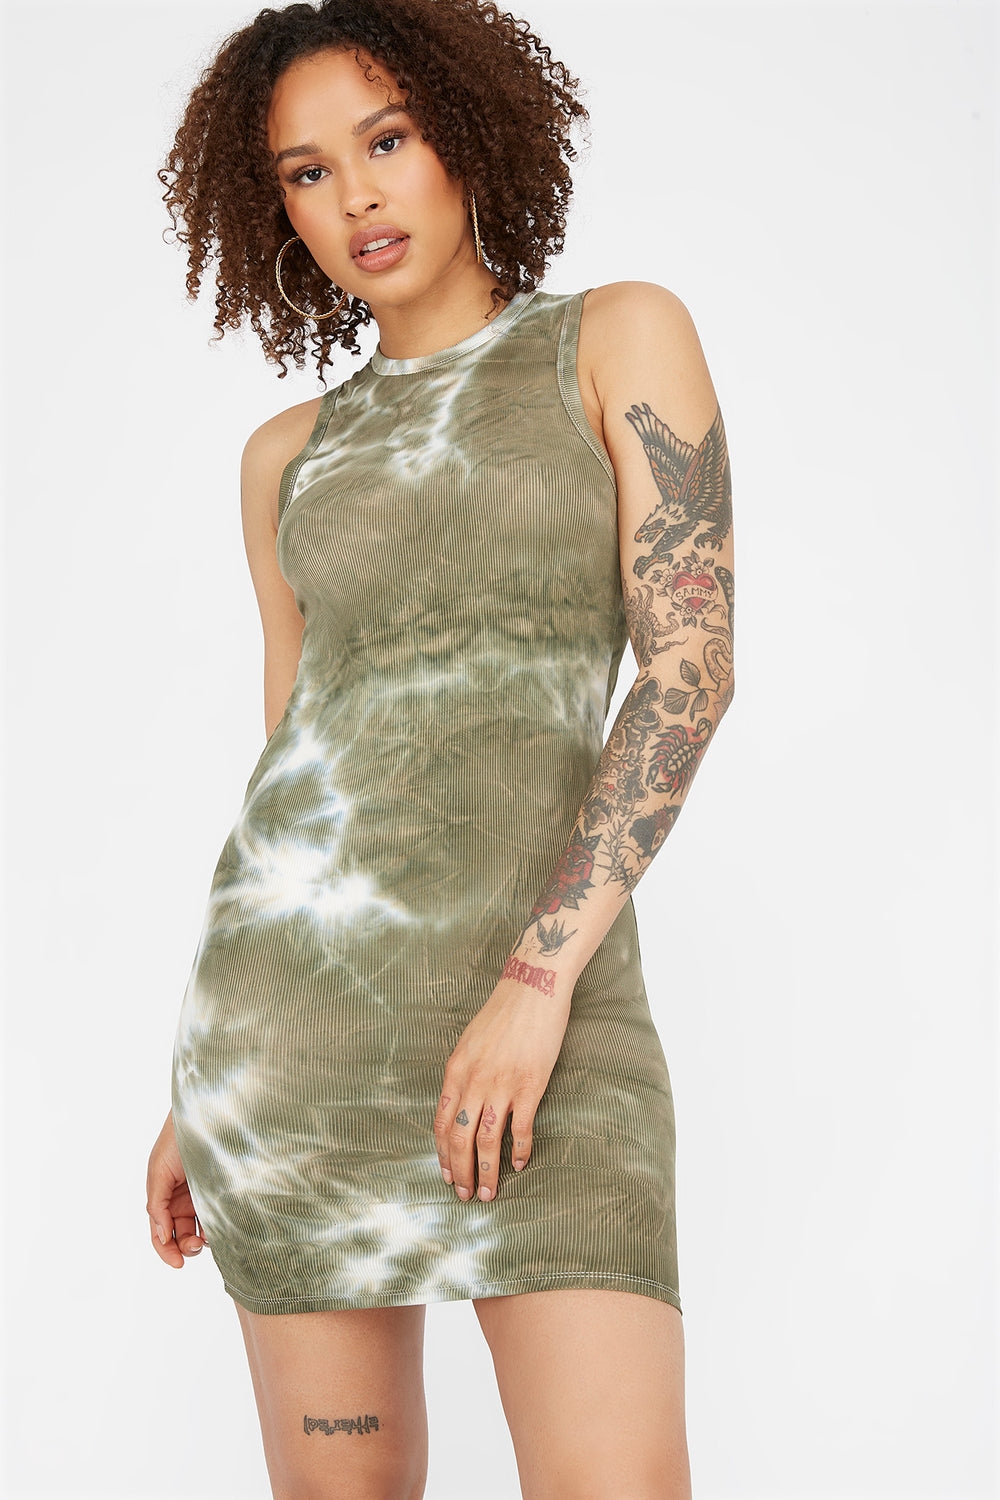 Soft Green Tie Dye Ribbed Sleeveless Bodycon Mini Dress Neon Green